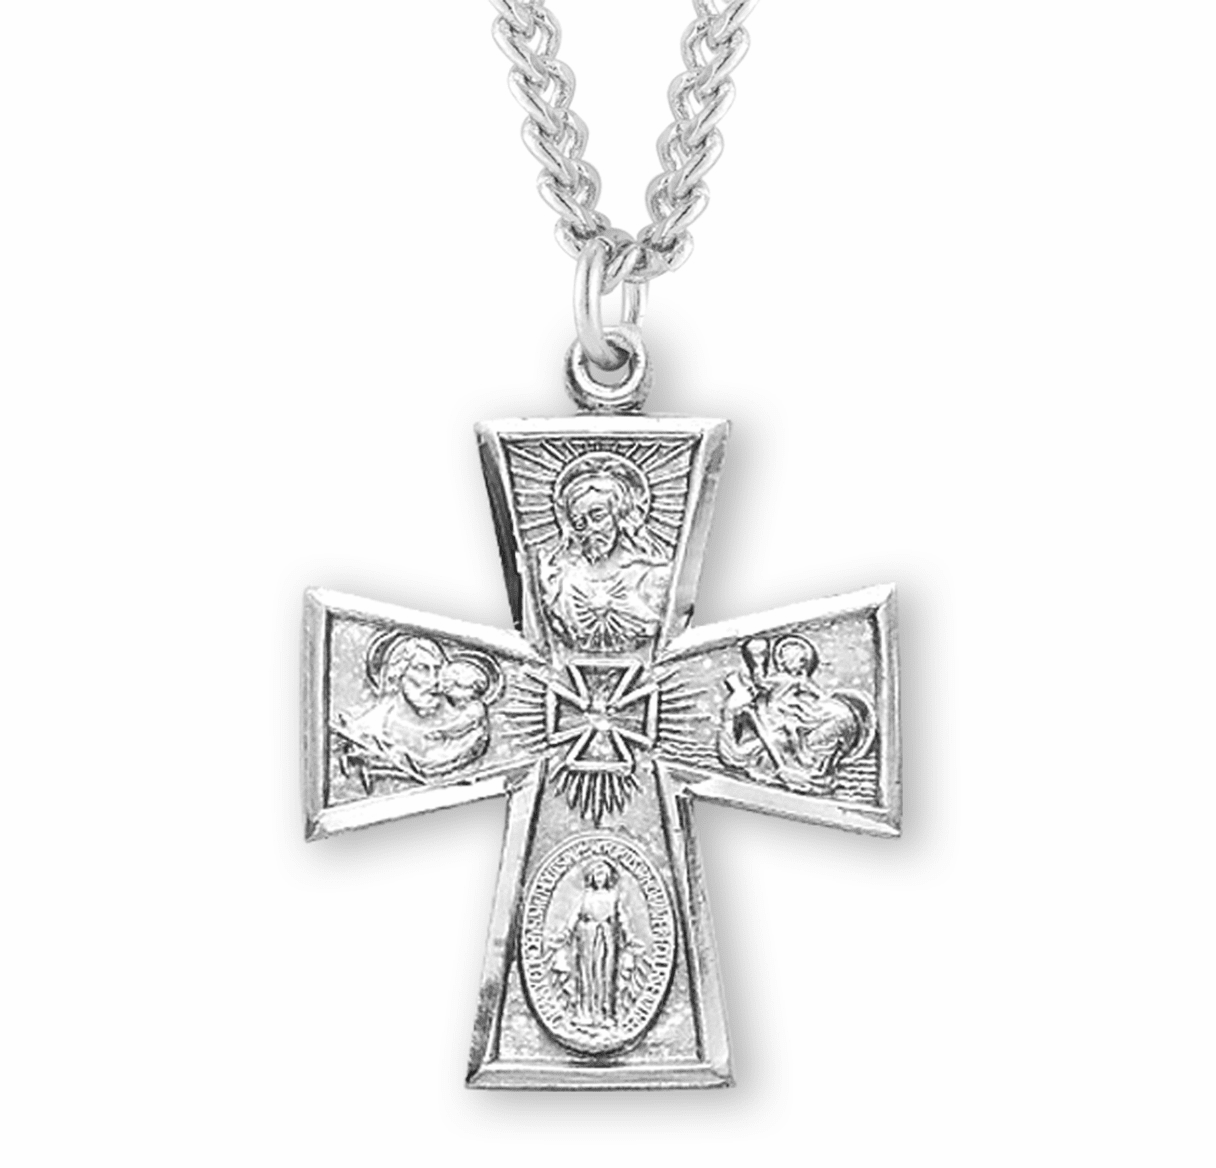 Gothic 4-Way Cross Medal Necklace w/Cross Center by HMH Religious